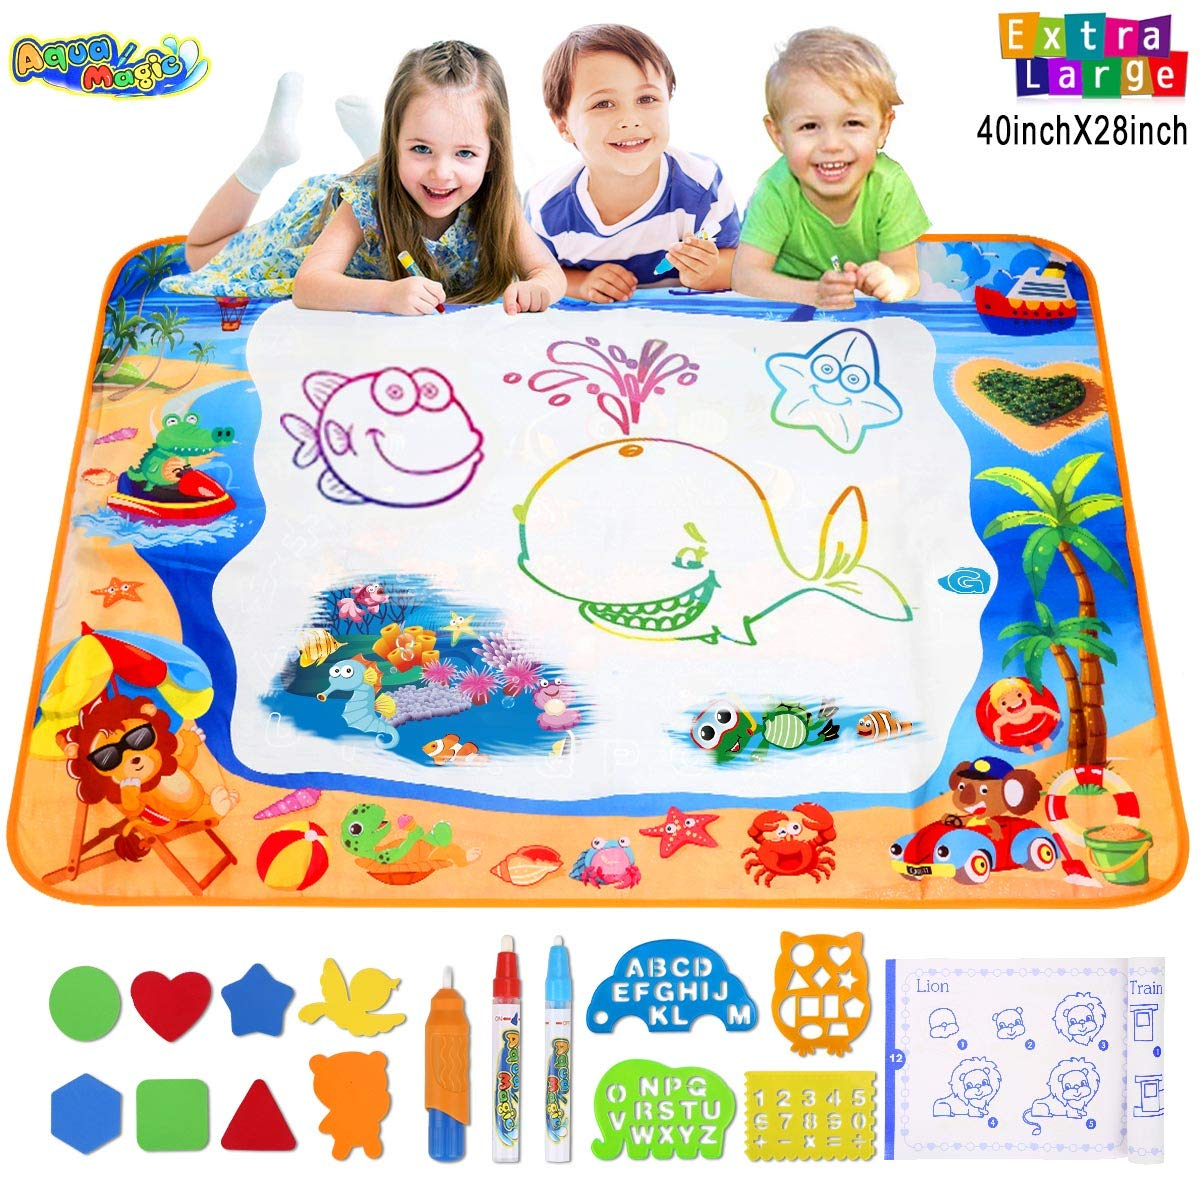 Hommate Water Doodle Mats Drawing Mat Multicolor Large Size 39.3 x 27.6 Inch Sea World Educational Learning Birthday Toys Gifts for 2 3 4 Years Old Girls Boys Tolddlers Kids (Multicolor)